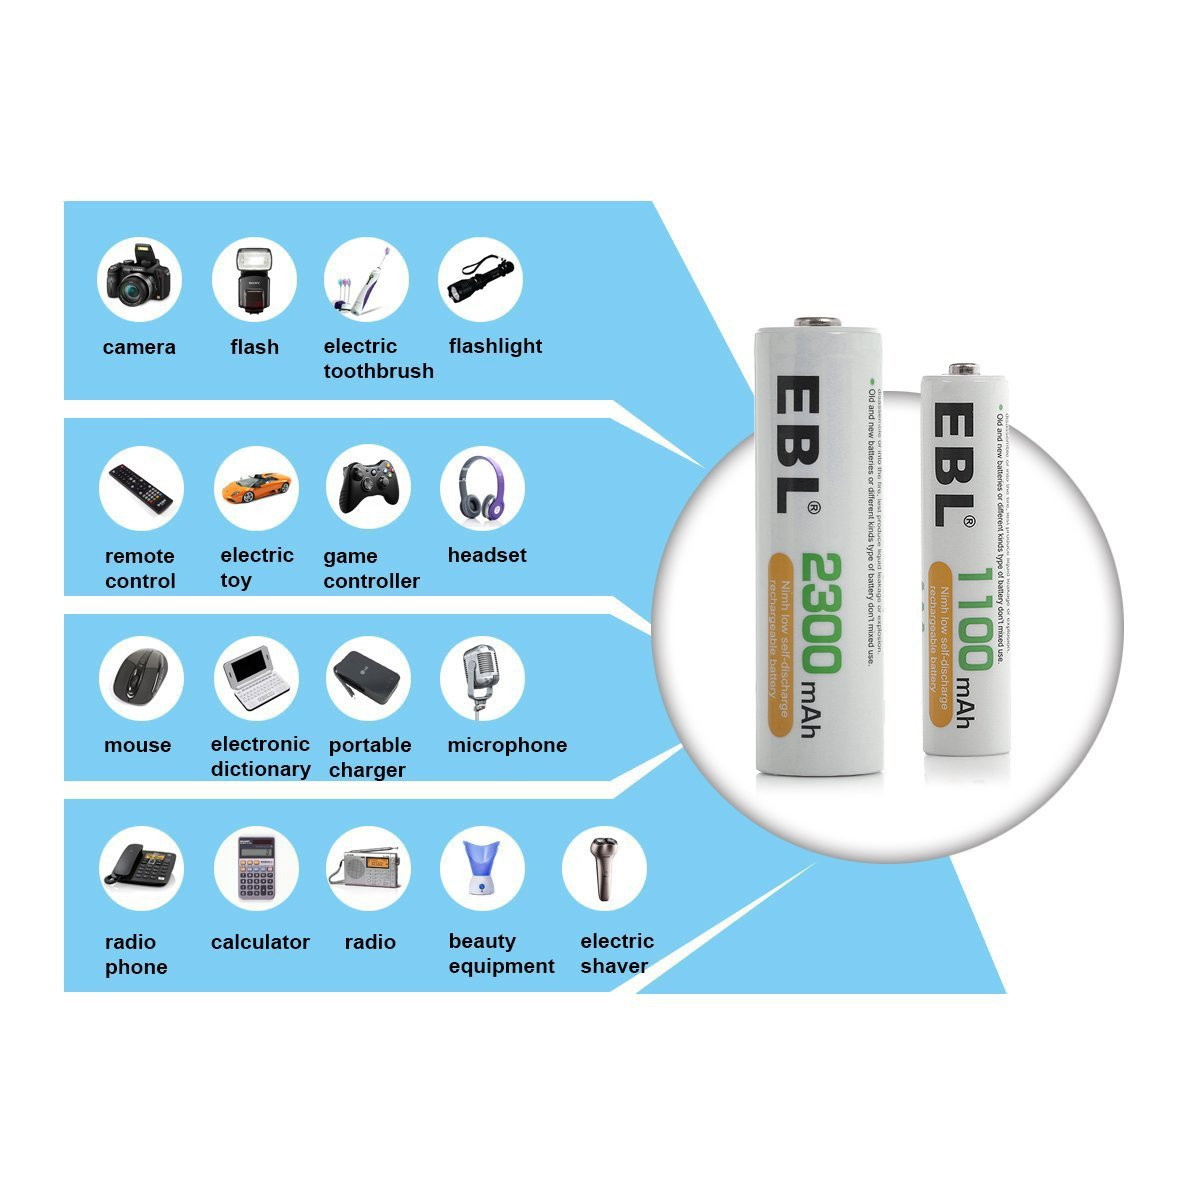 EBL 40Min iQuick Smart Battery Charger With USB Port and AA 2300mAh Rechargeable Batteries 4 Counts by EBL (Image #5)